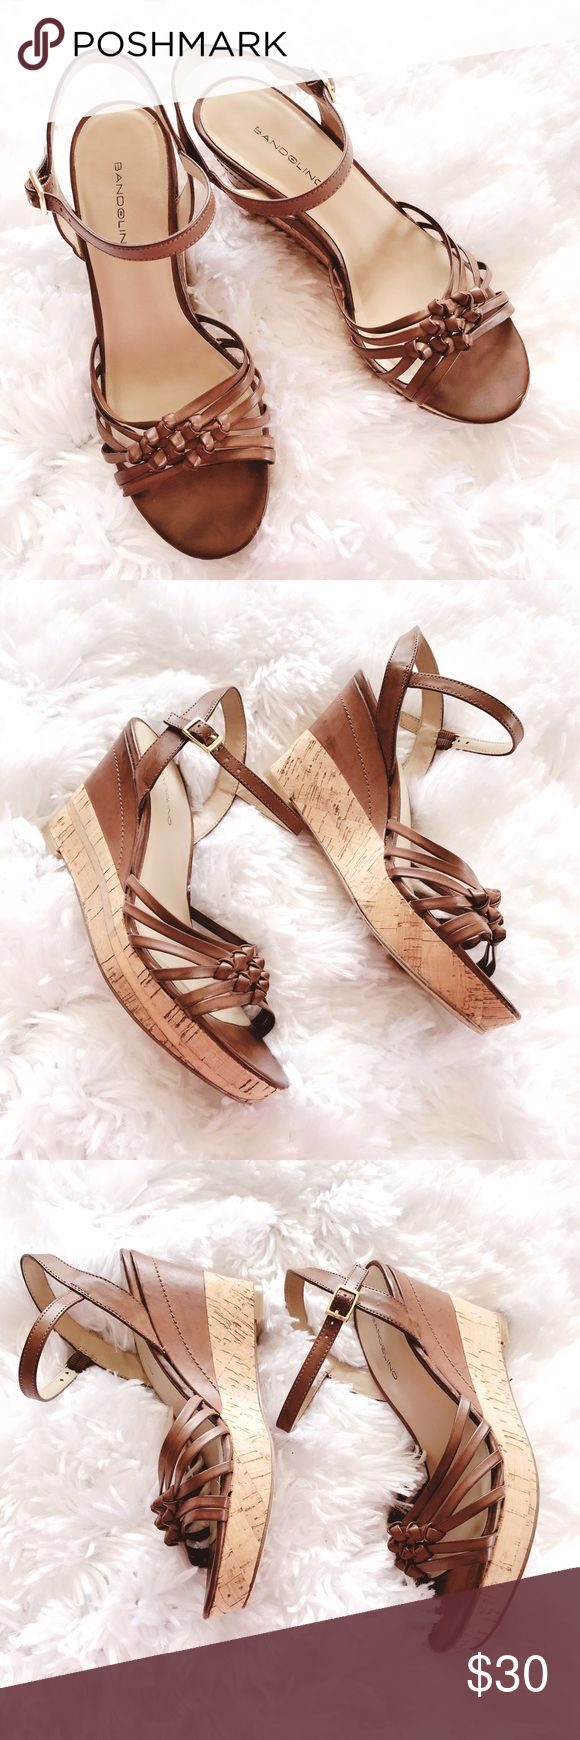 Bandolino Brown Ankle Strap Peep-Toe Wedges Bandolino Brown Ankle Strap Peep-Toe Wedge Sandals.  Heel measurements 3.5 inches.  In excellent condition.  One small scratch on the inside of the shoe but that's it. Bandolino Shoes Wedges